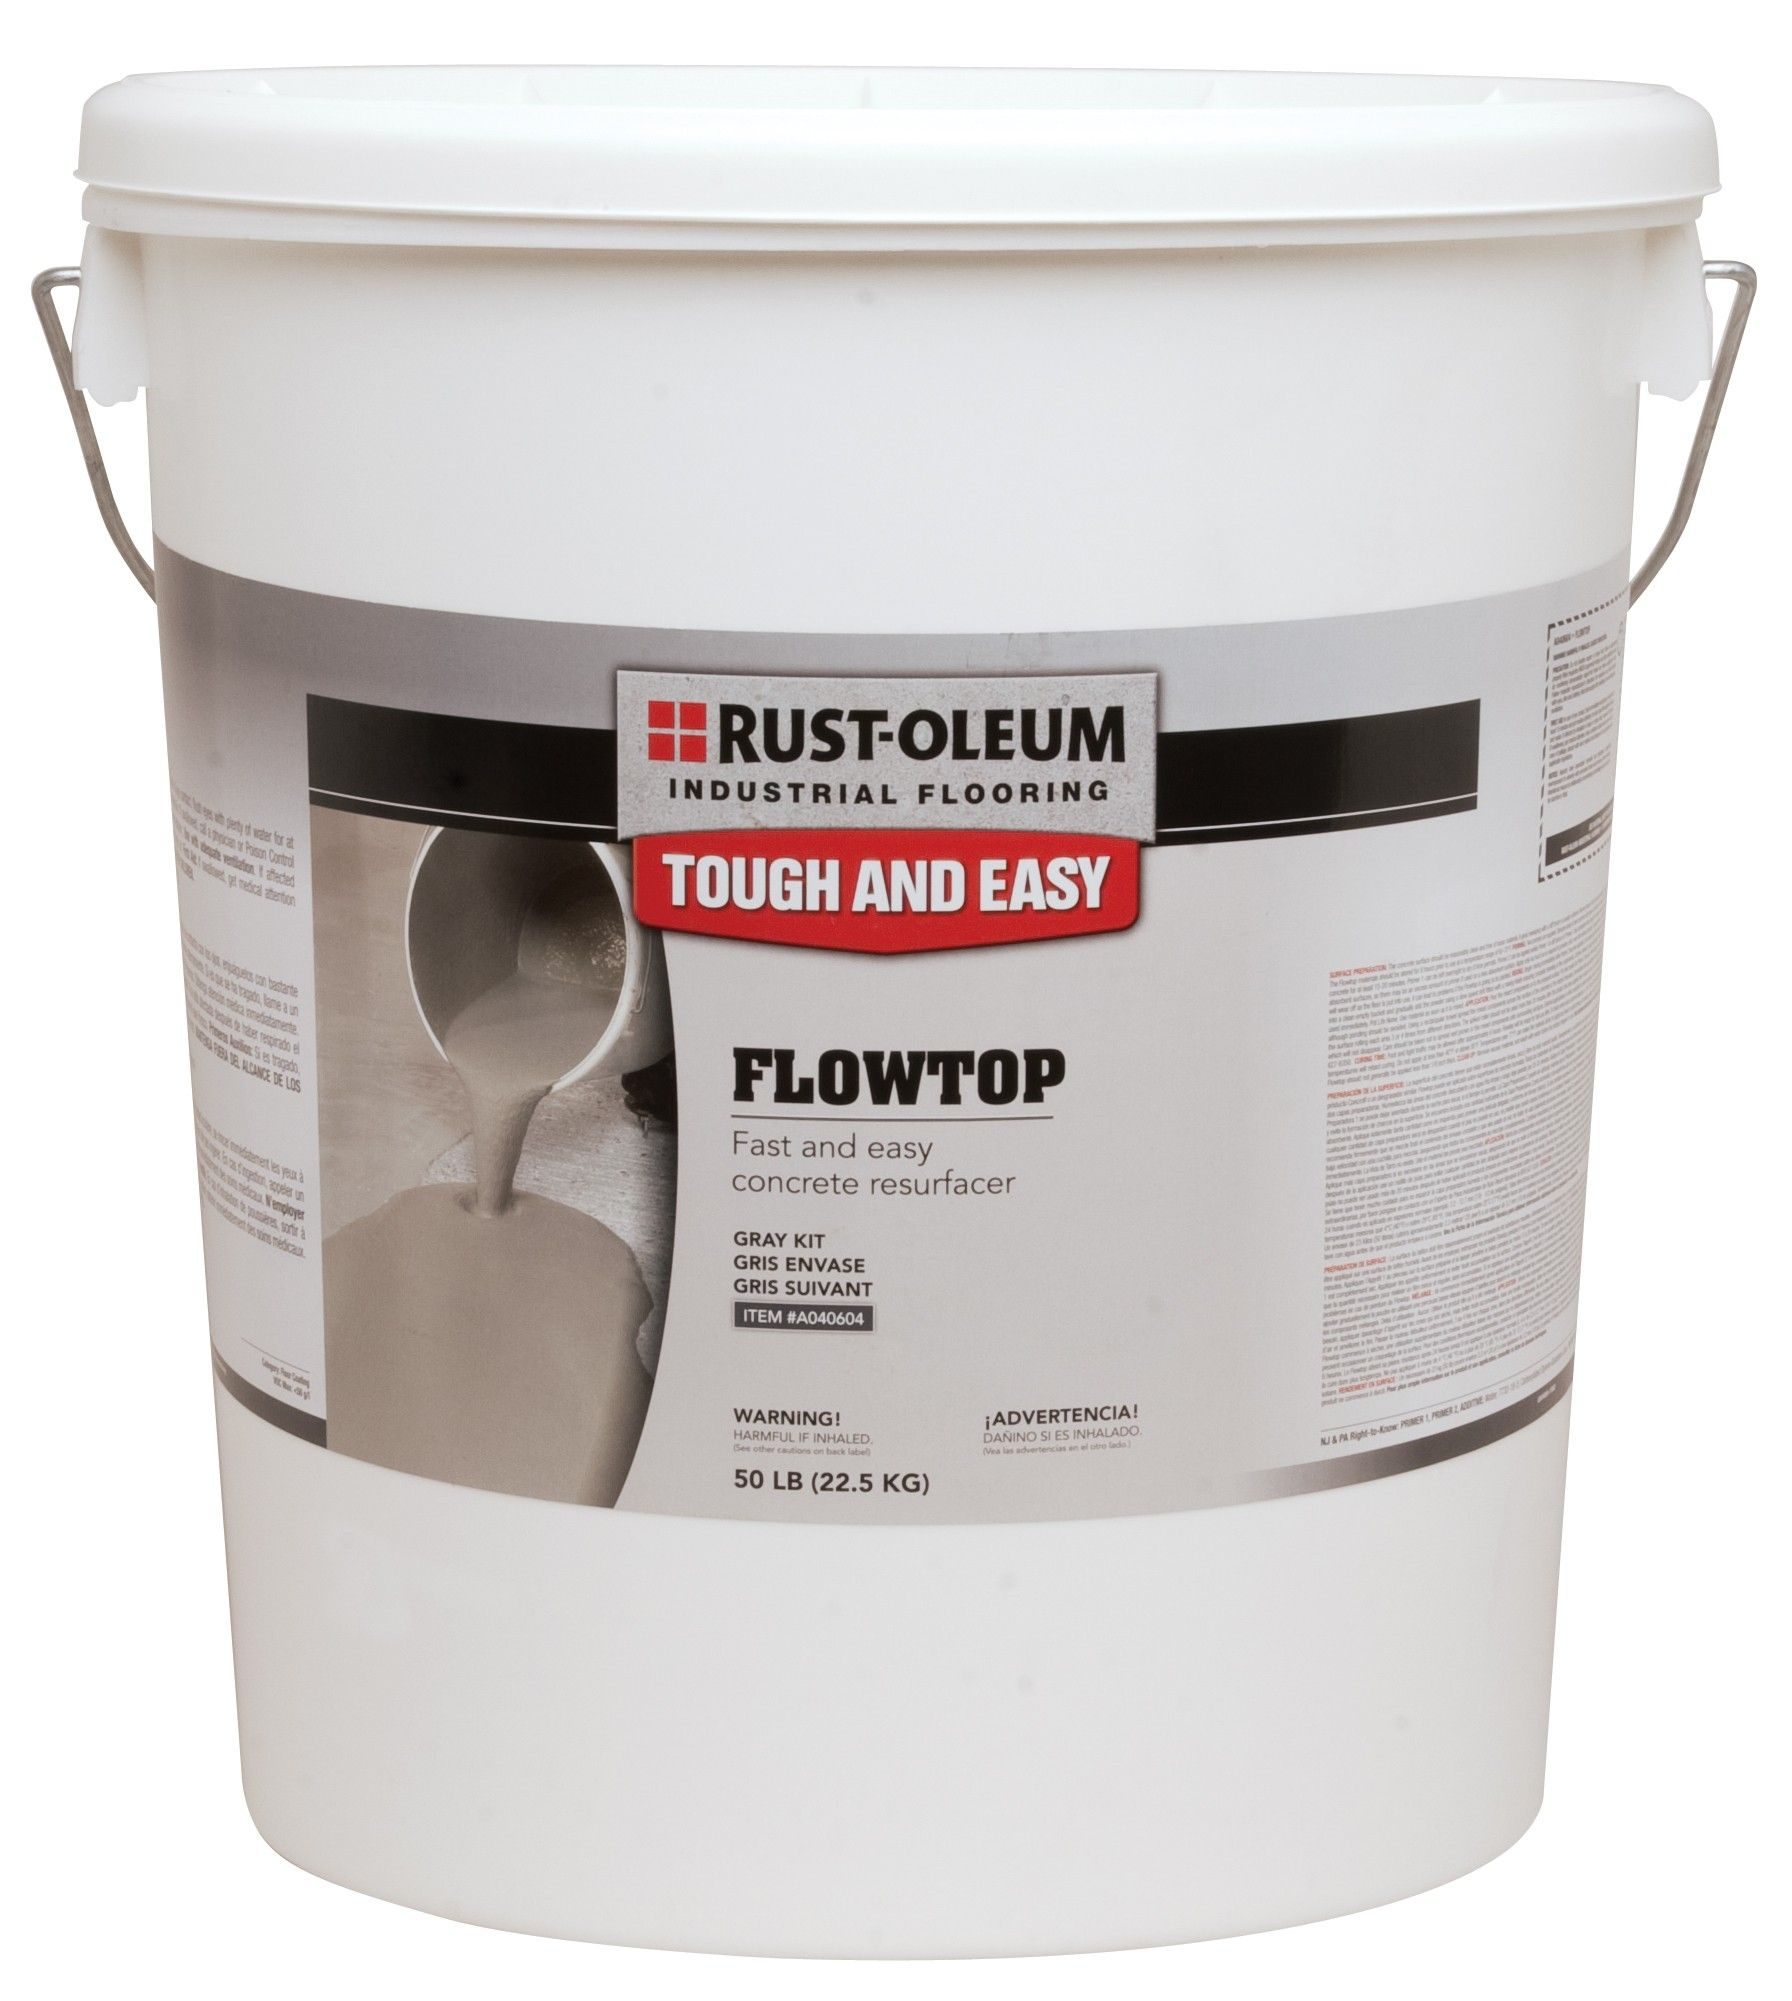 Flowtop Concrete Resurfacer High Strength Self Leveling Compound